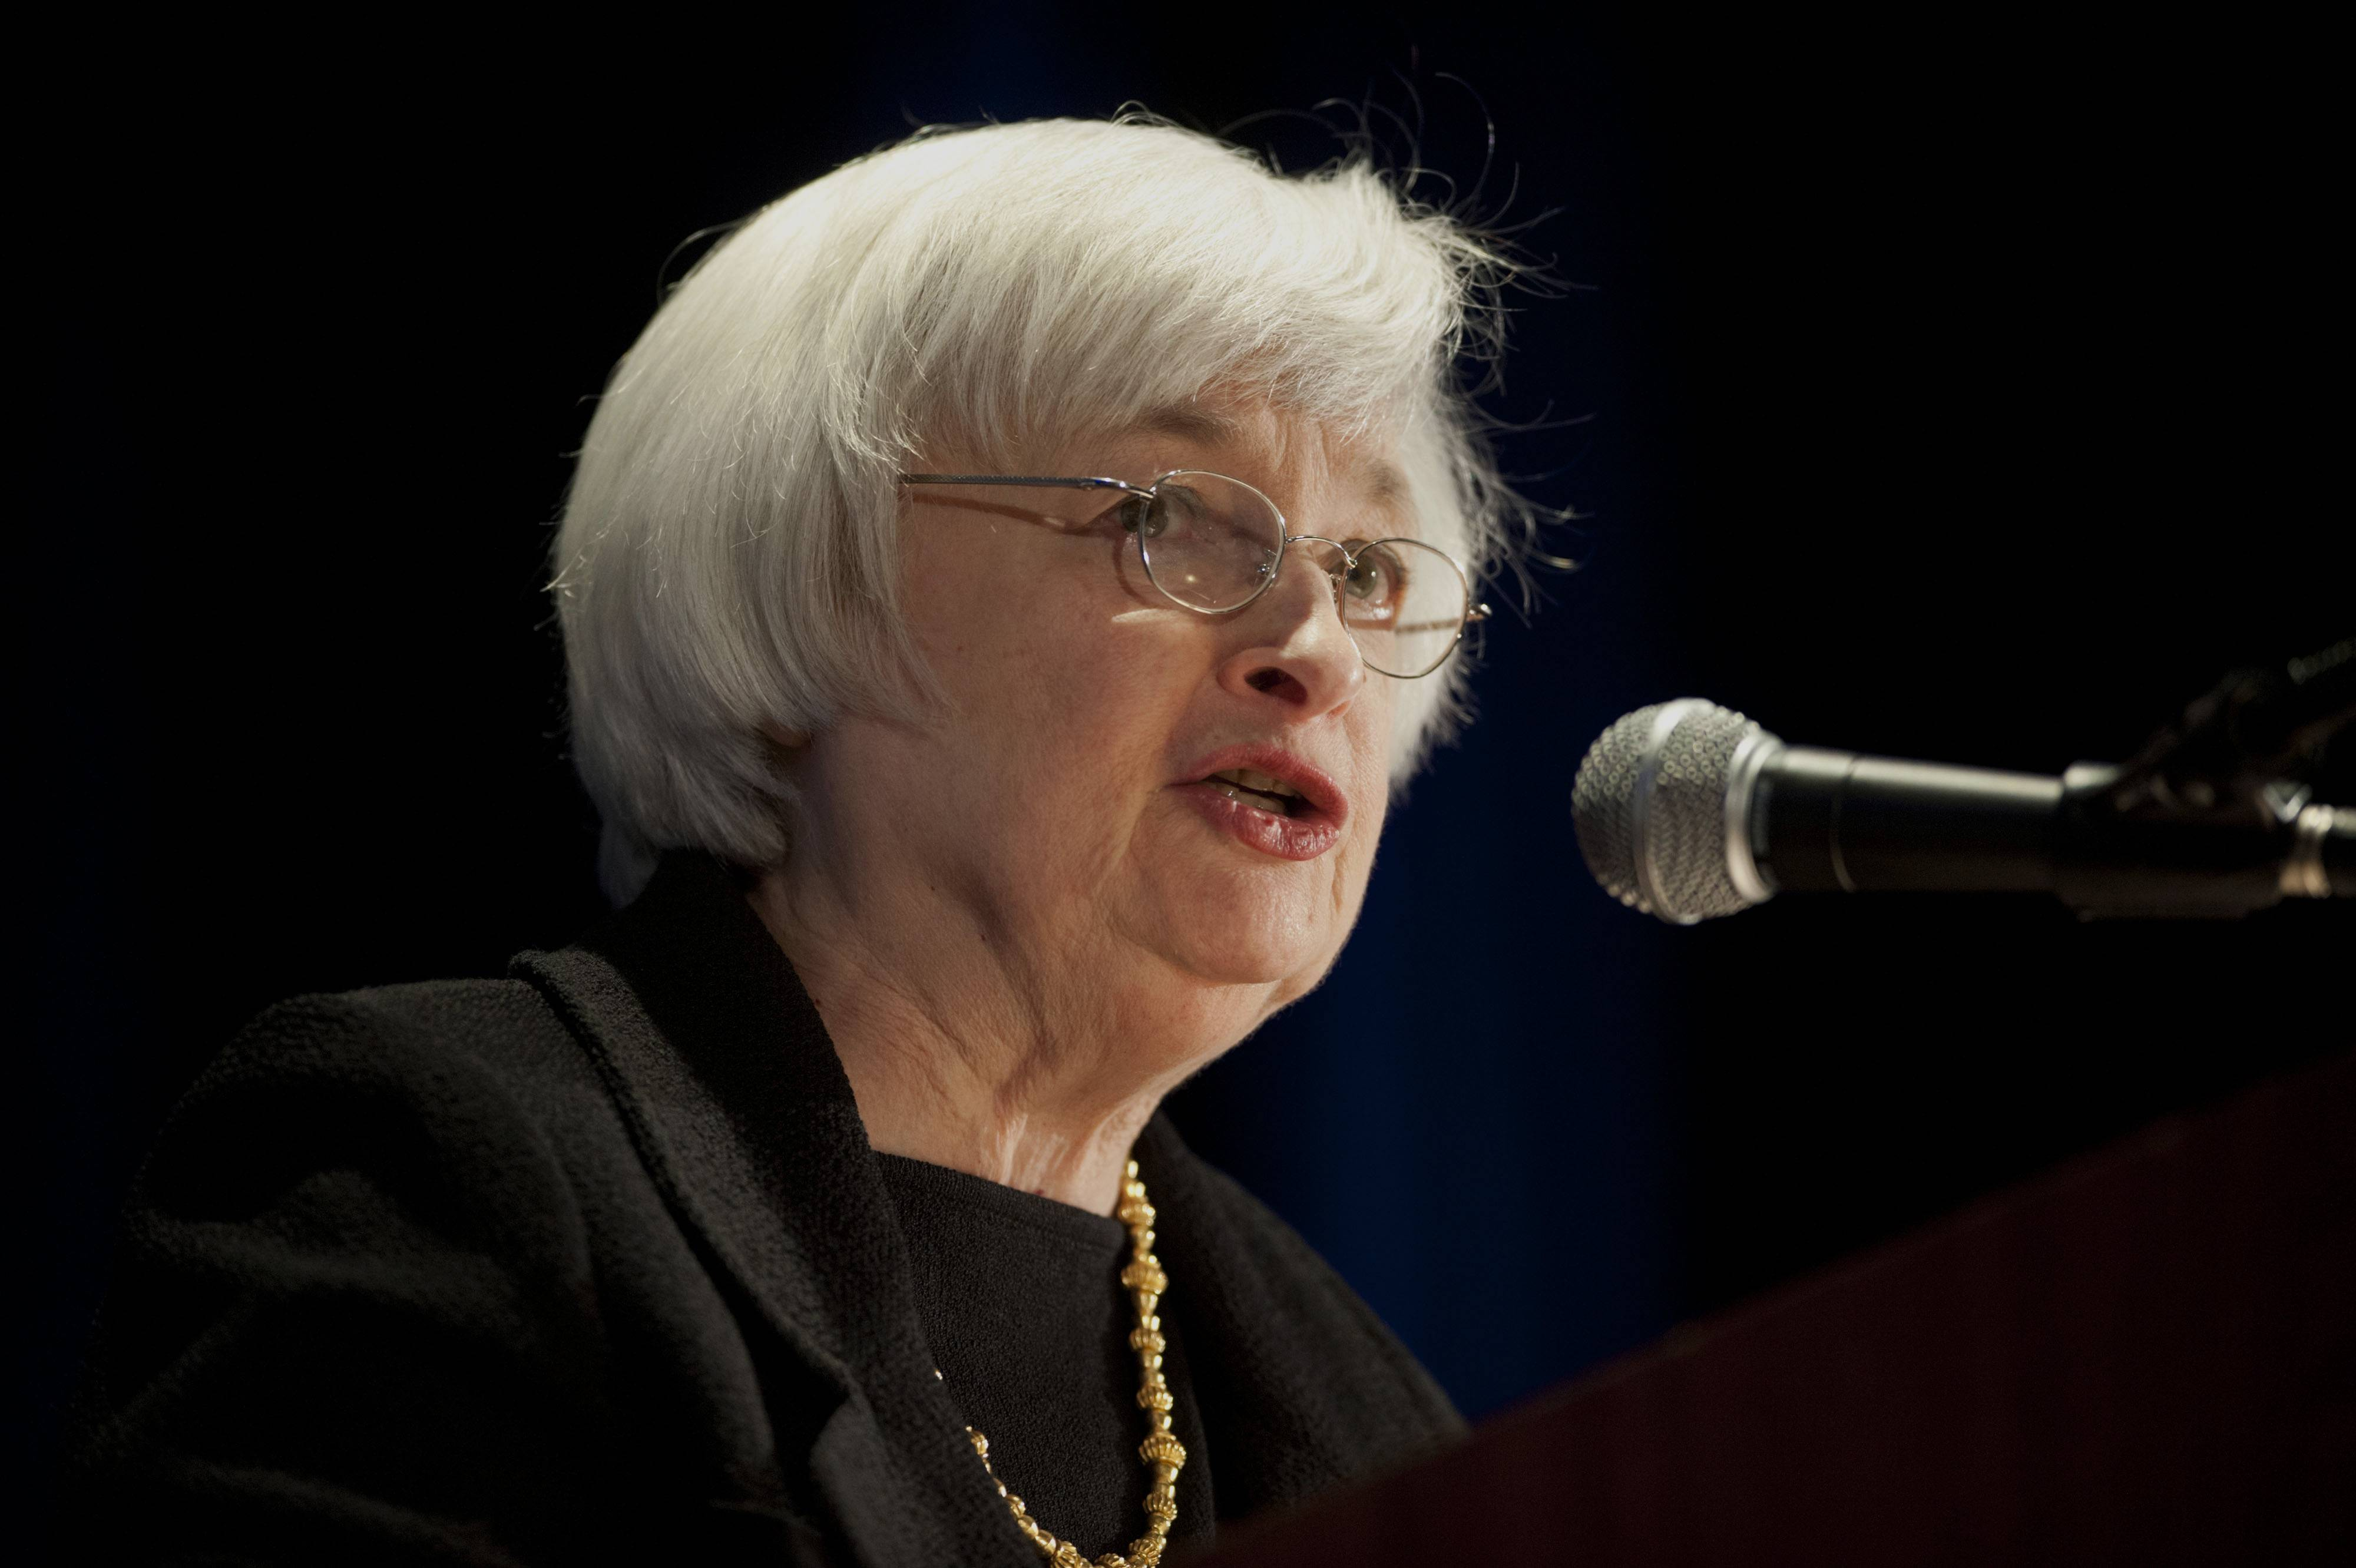 Janet Yellen, chair of the U.S. Federal Reserve, spoke at the 2014 National Interagency Community Reinvestment Conference (NICRC) in Chicago Monday.